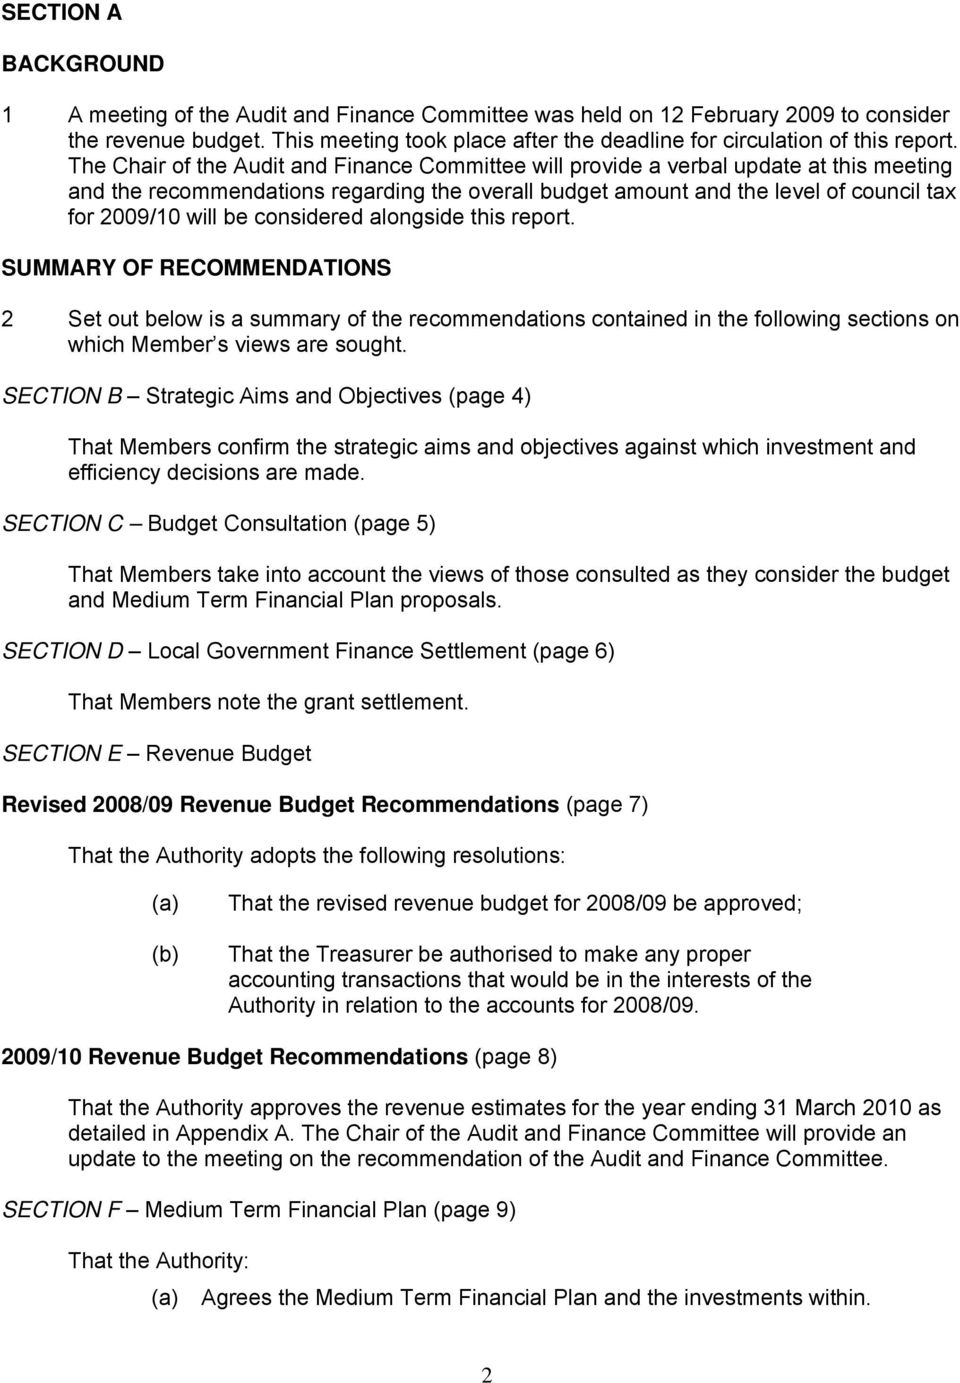 The Chair of the Audit and Finance Committee will provide a verbal update at this meeting and the recommendations regarding the overall budget amount and the level of council tax for 2009/10 will be